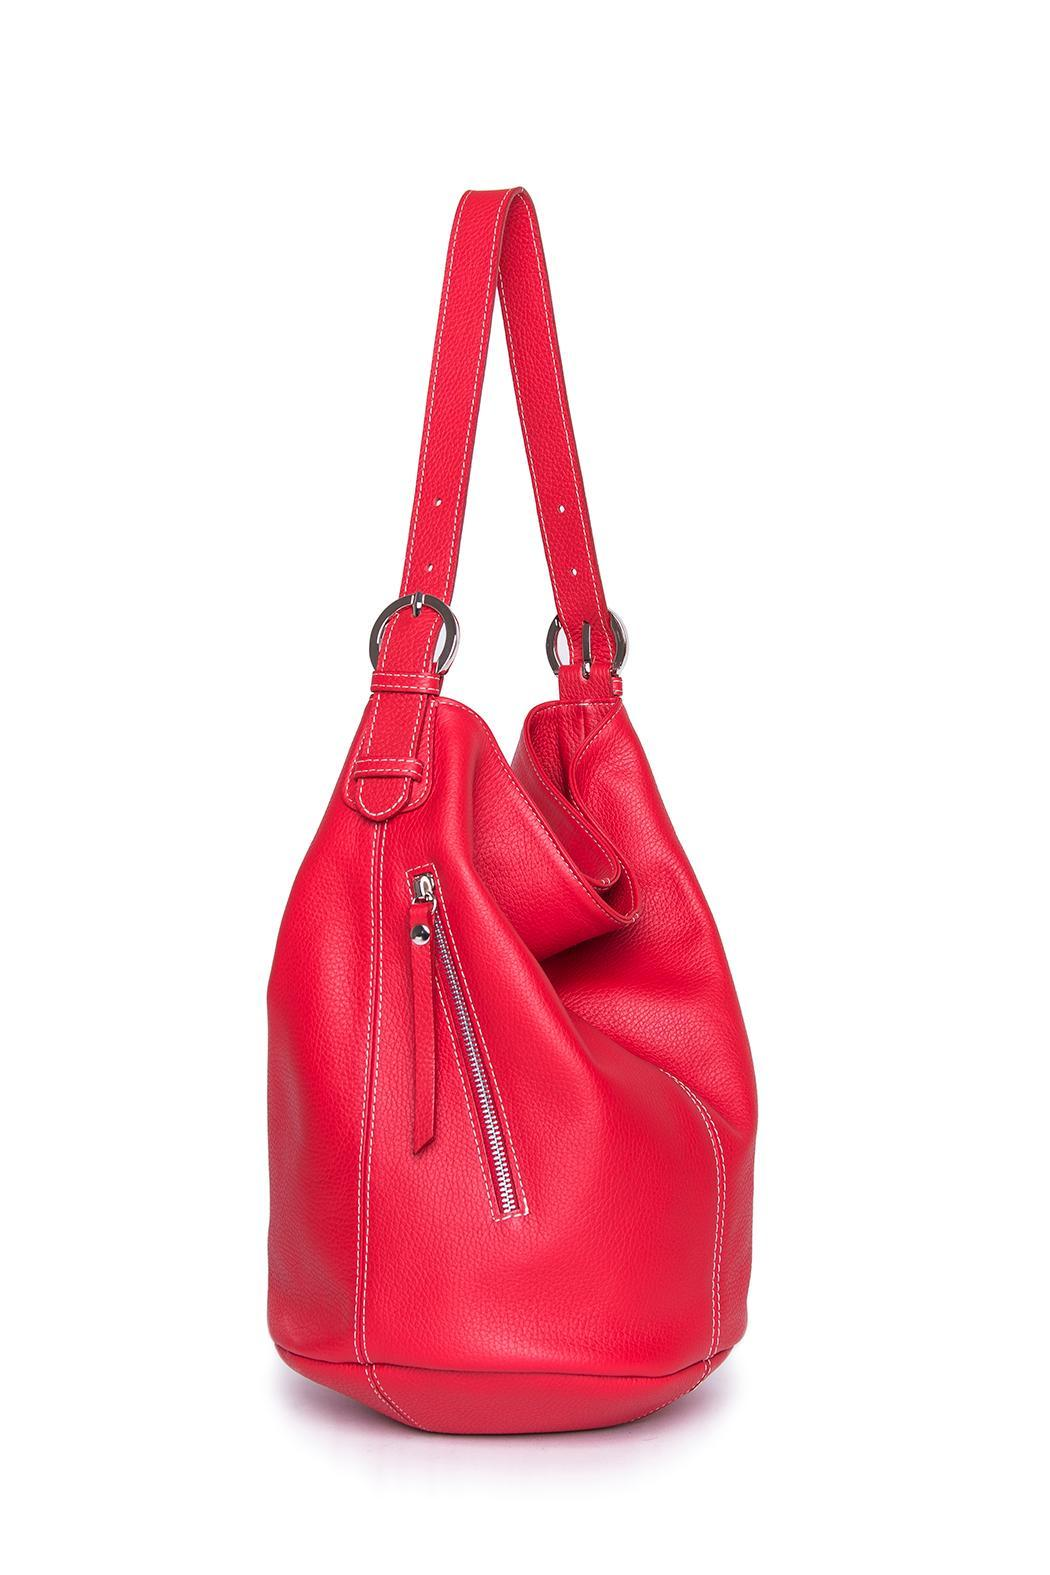 Torini Bags Red Sofia Bucket Bag - Main Image